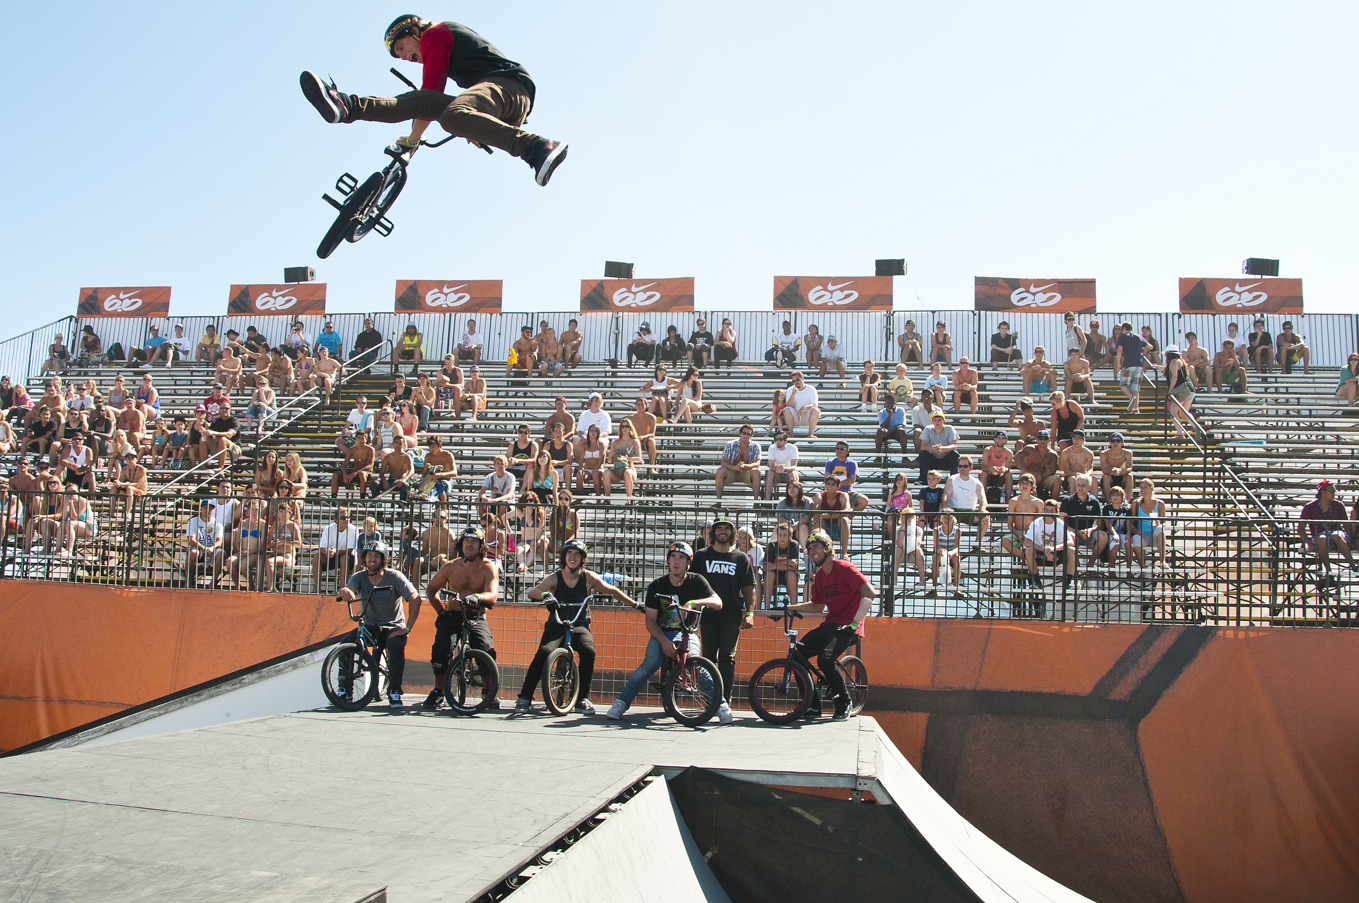 BMX Dennis Enarson - Seatgrab Indian Air